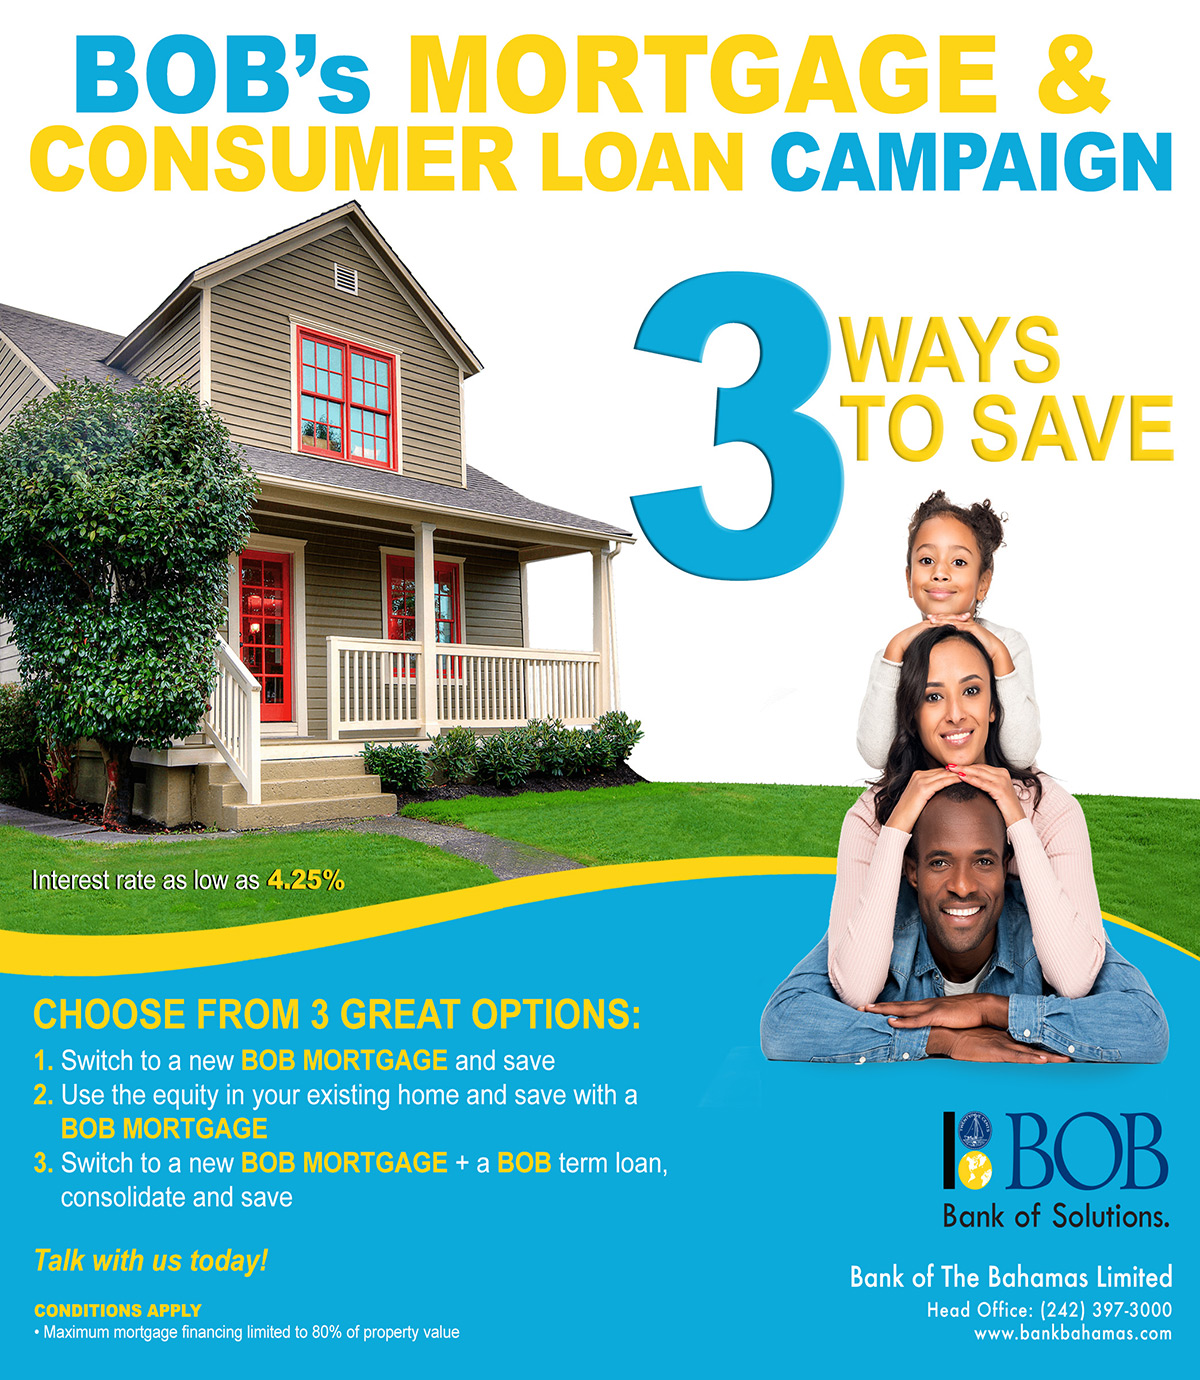 BOB Mortgage and Consumer Load Campaign